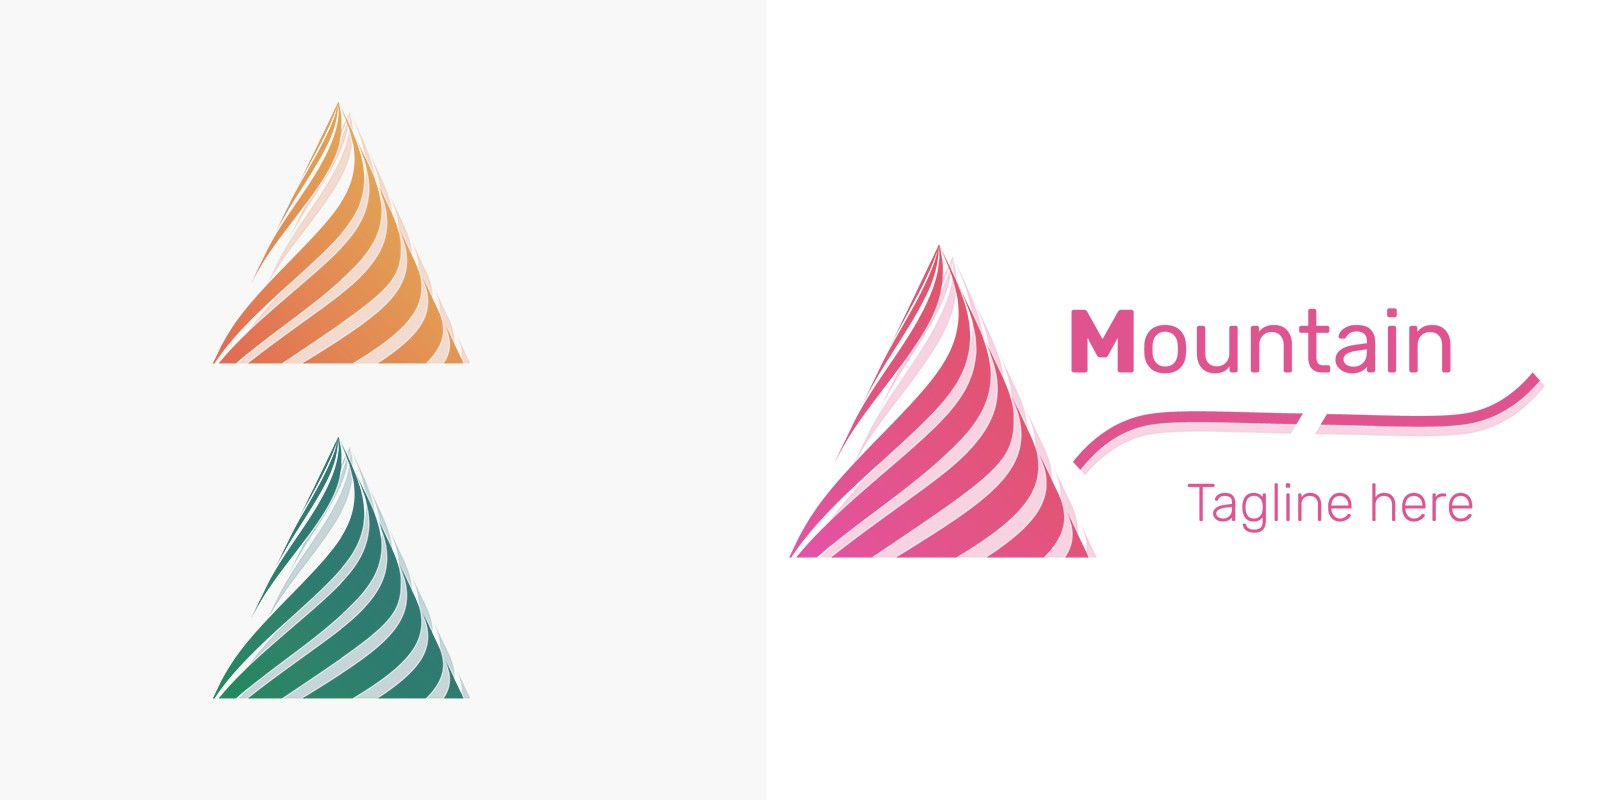 Mountain Logo - 2 Versions